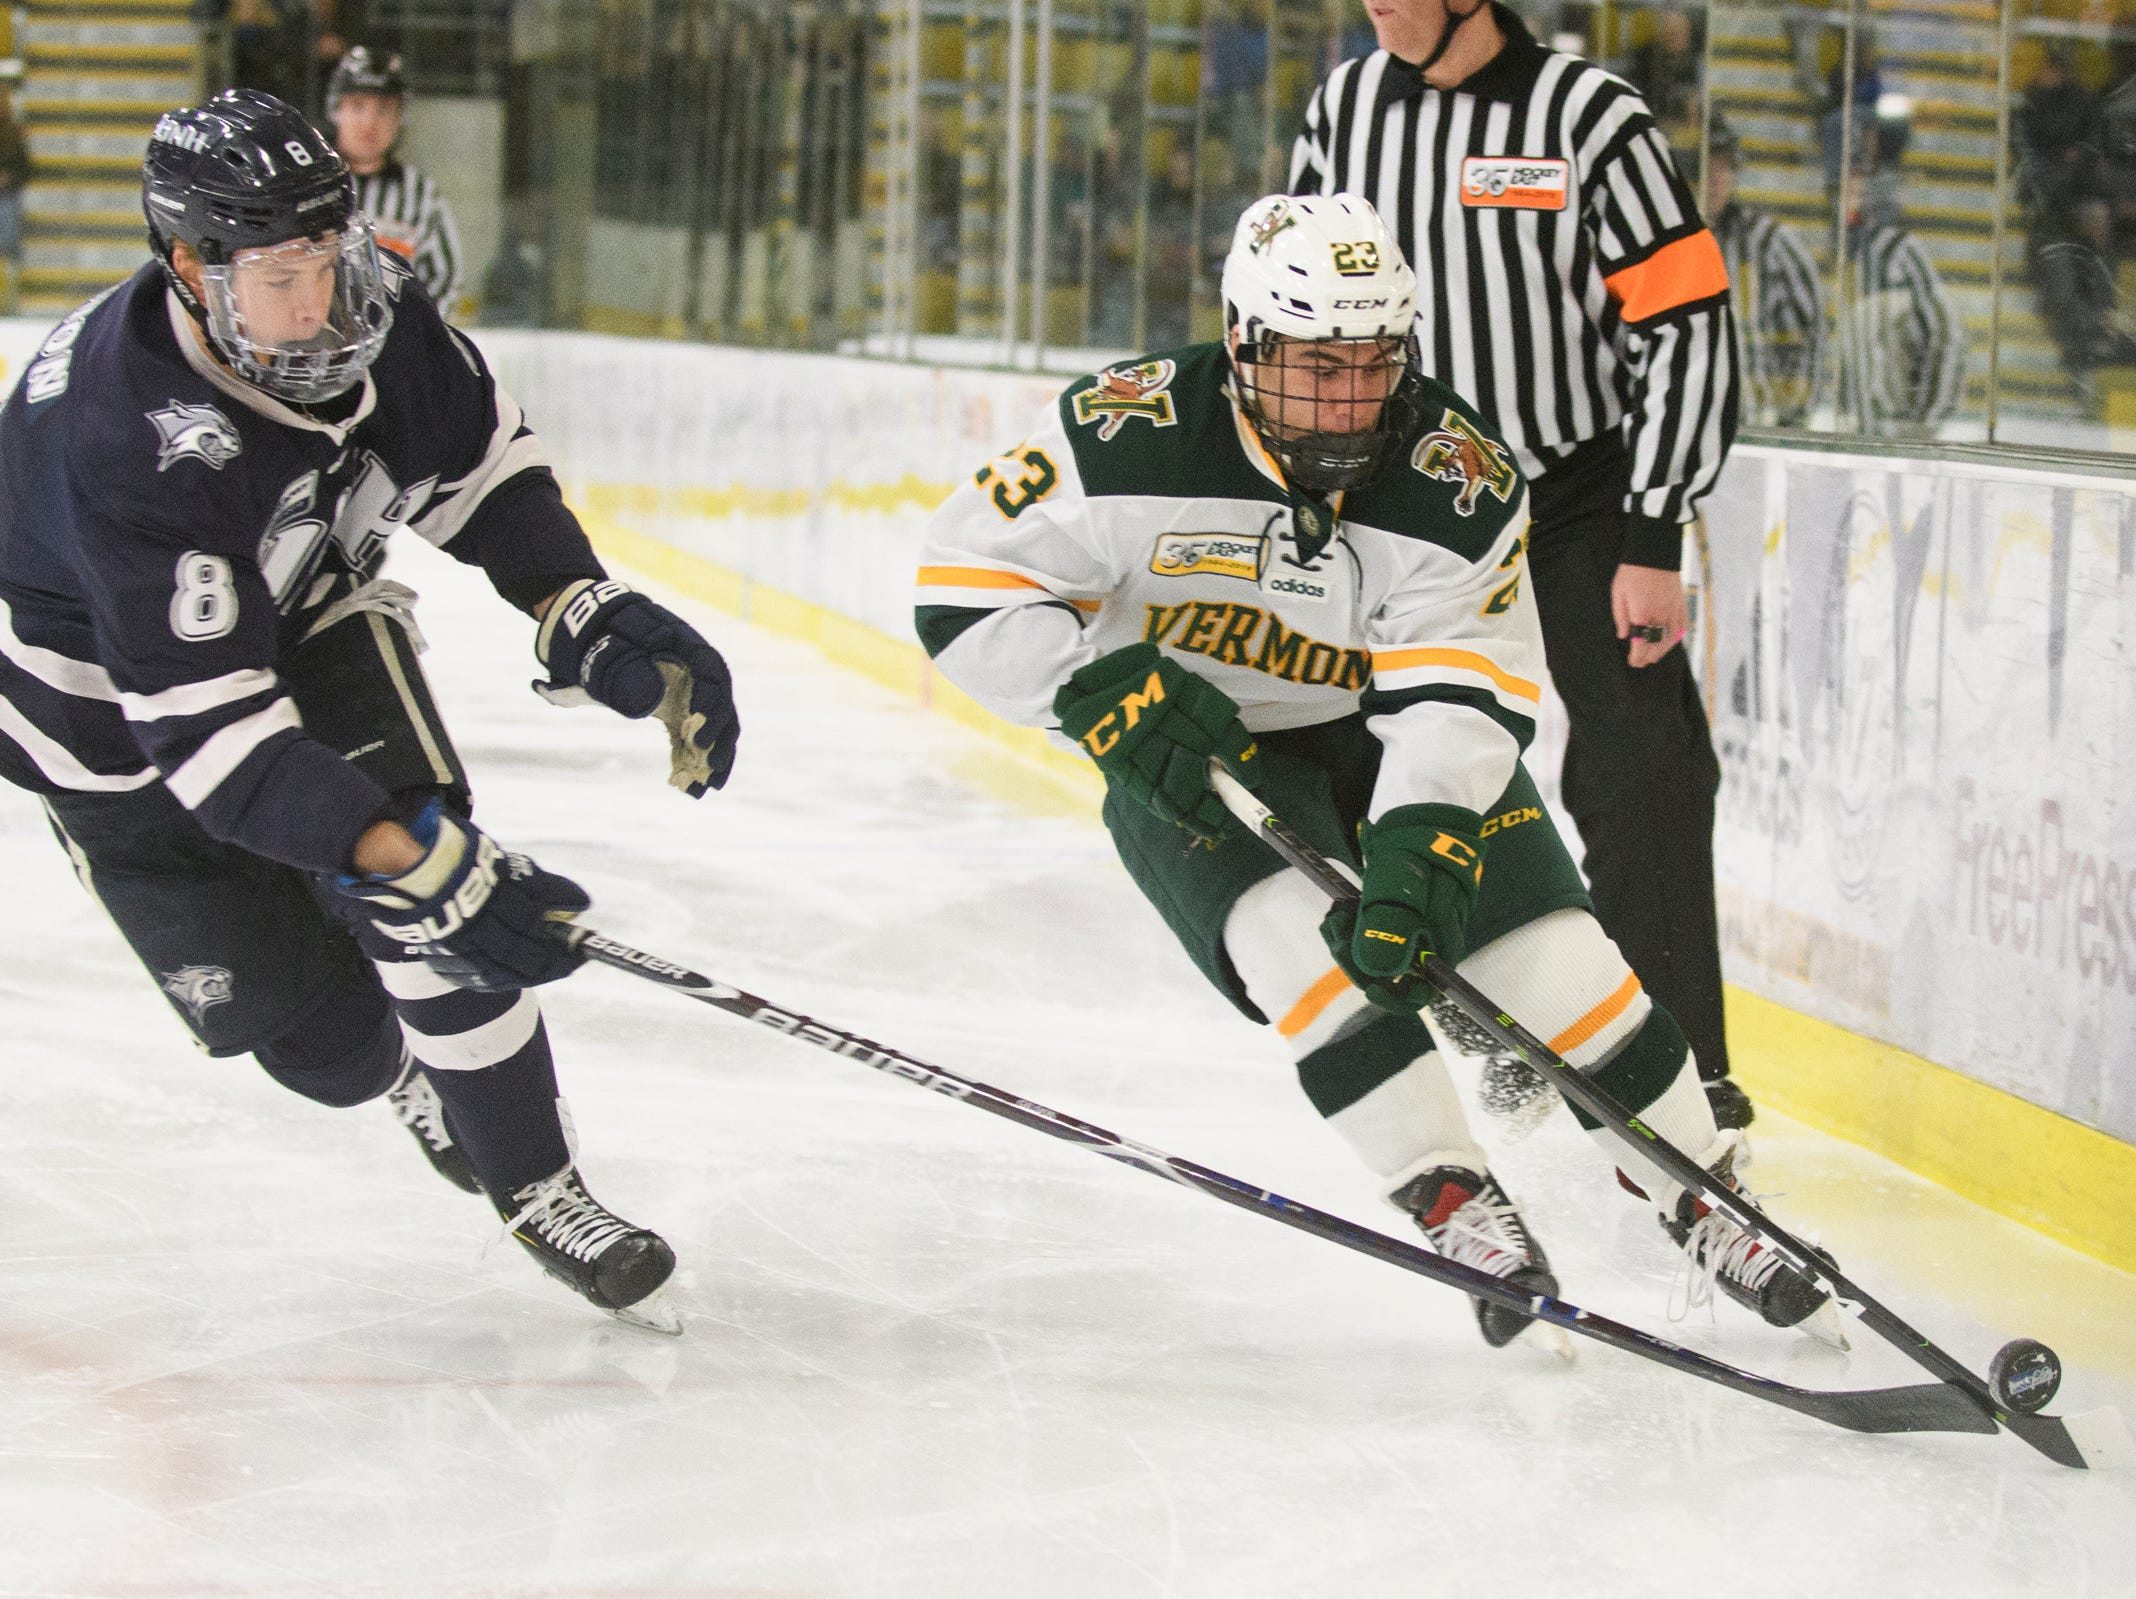 Vermont forward Max Kaufman (23) skates with the puck past New Hampshire's Max Gildon (8) during the men's hockey game between the New Hampshire Wildcats and the Vermont Catamounts at Gutterson Field House on Friday night February 8, 2019 in Burlington, Vermont.